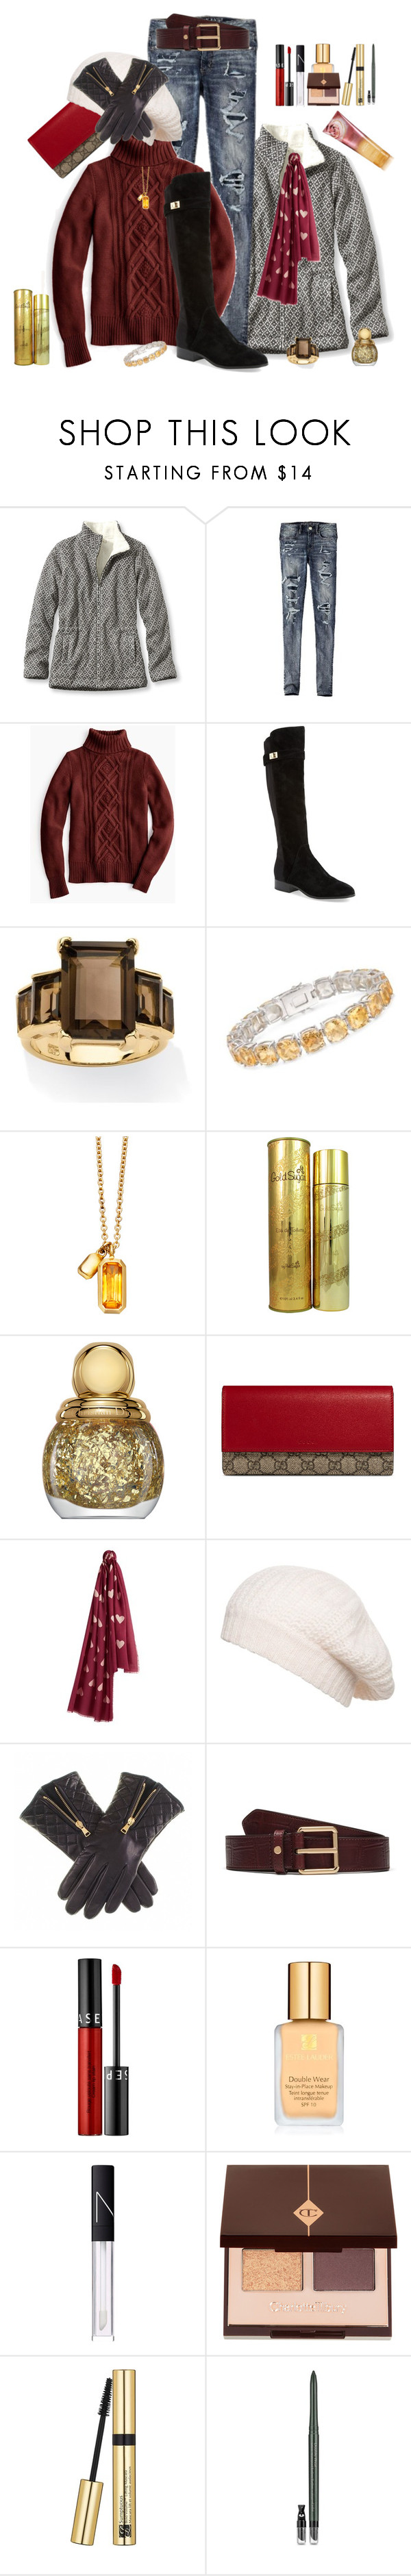 """""""Milk Chocolate"""" by winscotthk ❤ liked on Polyvore featuring L.L.Bean, American Eagle Outfitters, J.Crew, Nicole Miller, Palm Beach Jewelry, Ross-Simons, Astley Clarke, Pink Sugar, Christian Dior and Gucci"""